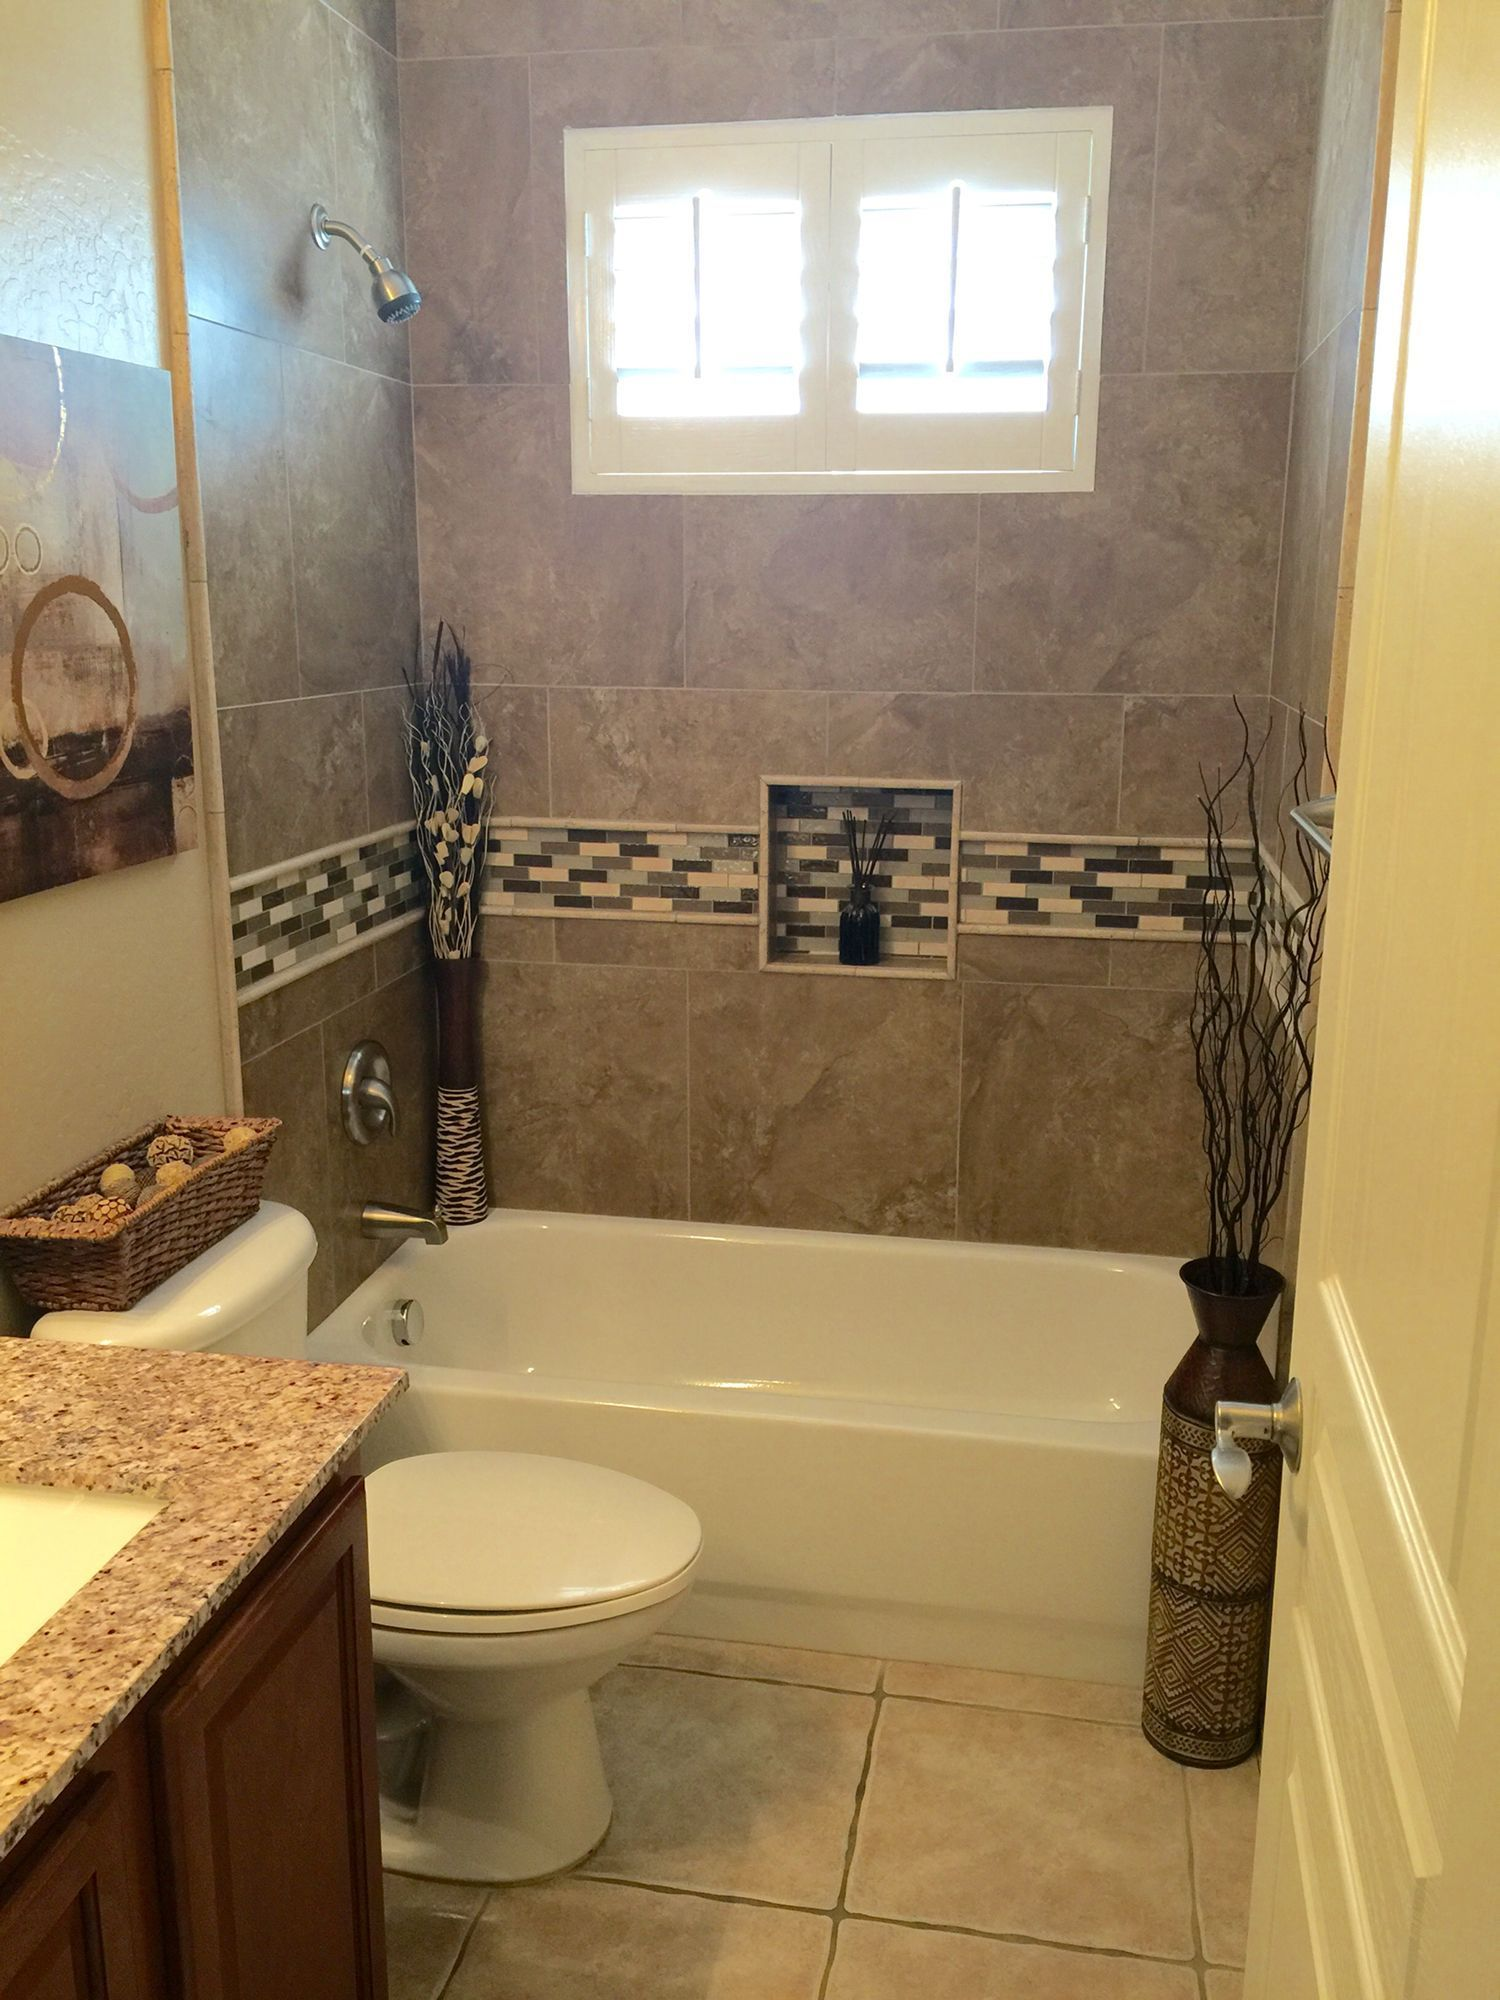 9 Secret Advice To Make An Outstanding Home Bathroom Remodel Bathtub Remodel Diy Bathroom Remodel Rustic Bathroom Remodel